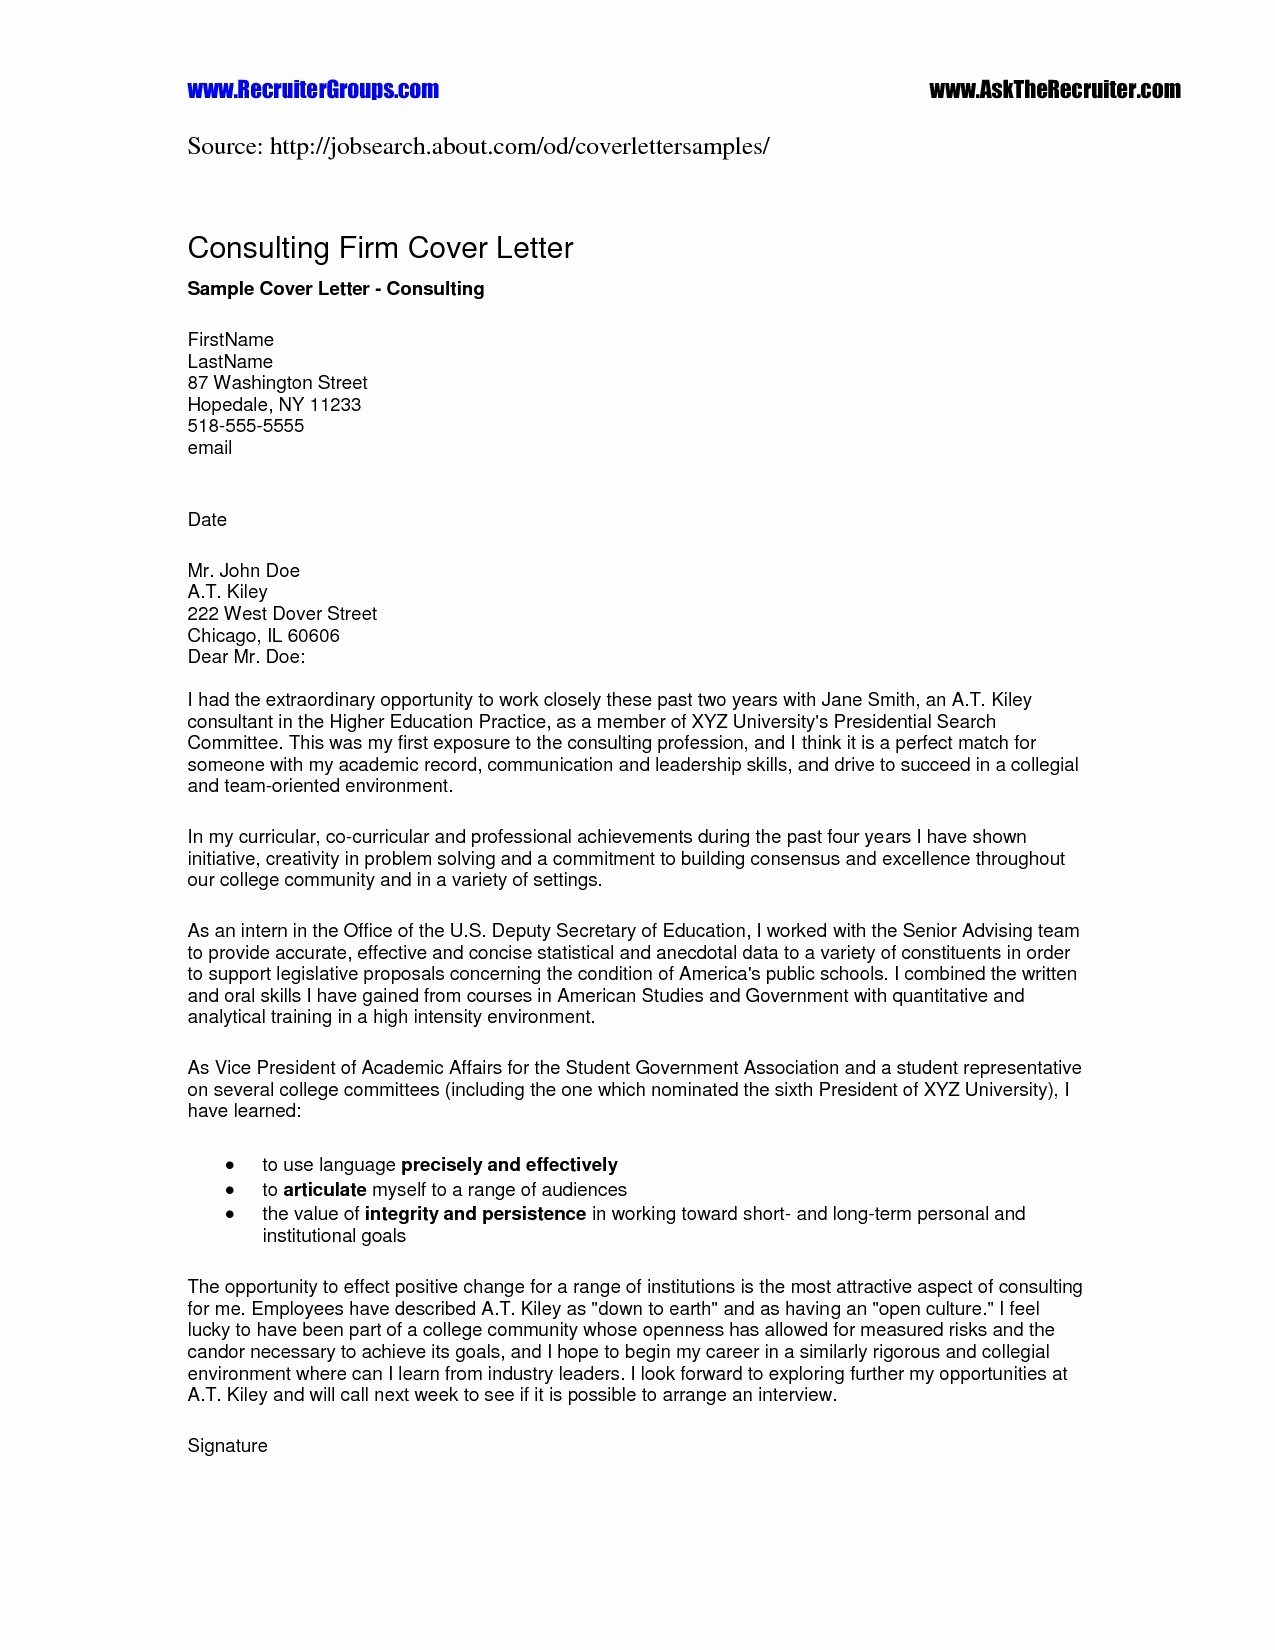 Microsoft Word Resume Cover Letter Template - Resume and Cover Letter Templates Fresh Teacher Cover Letter